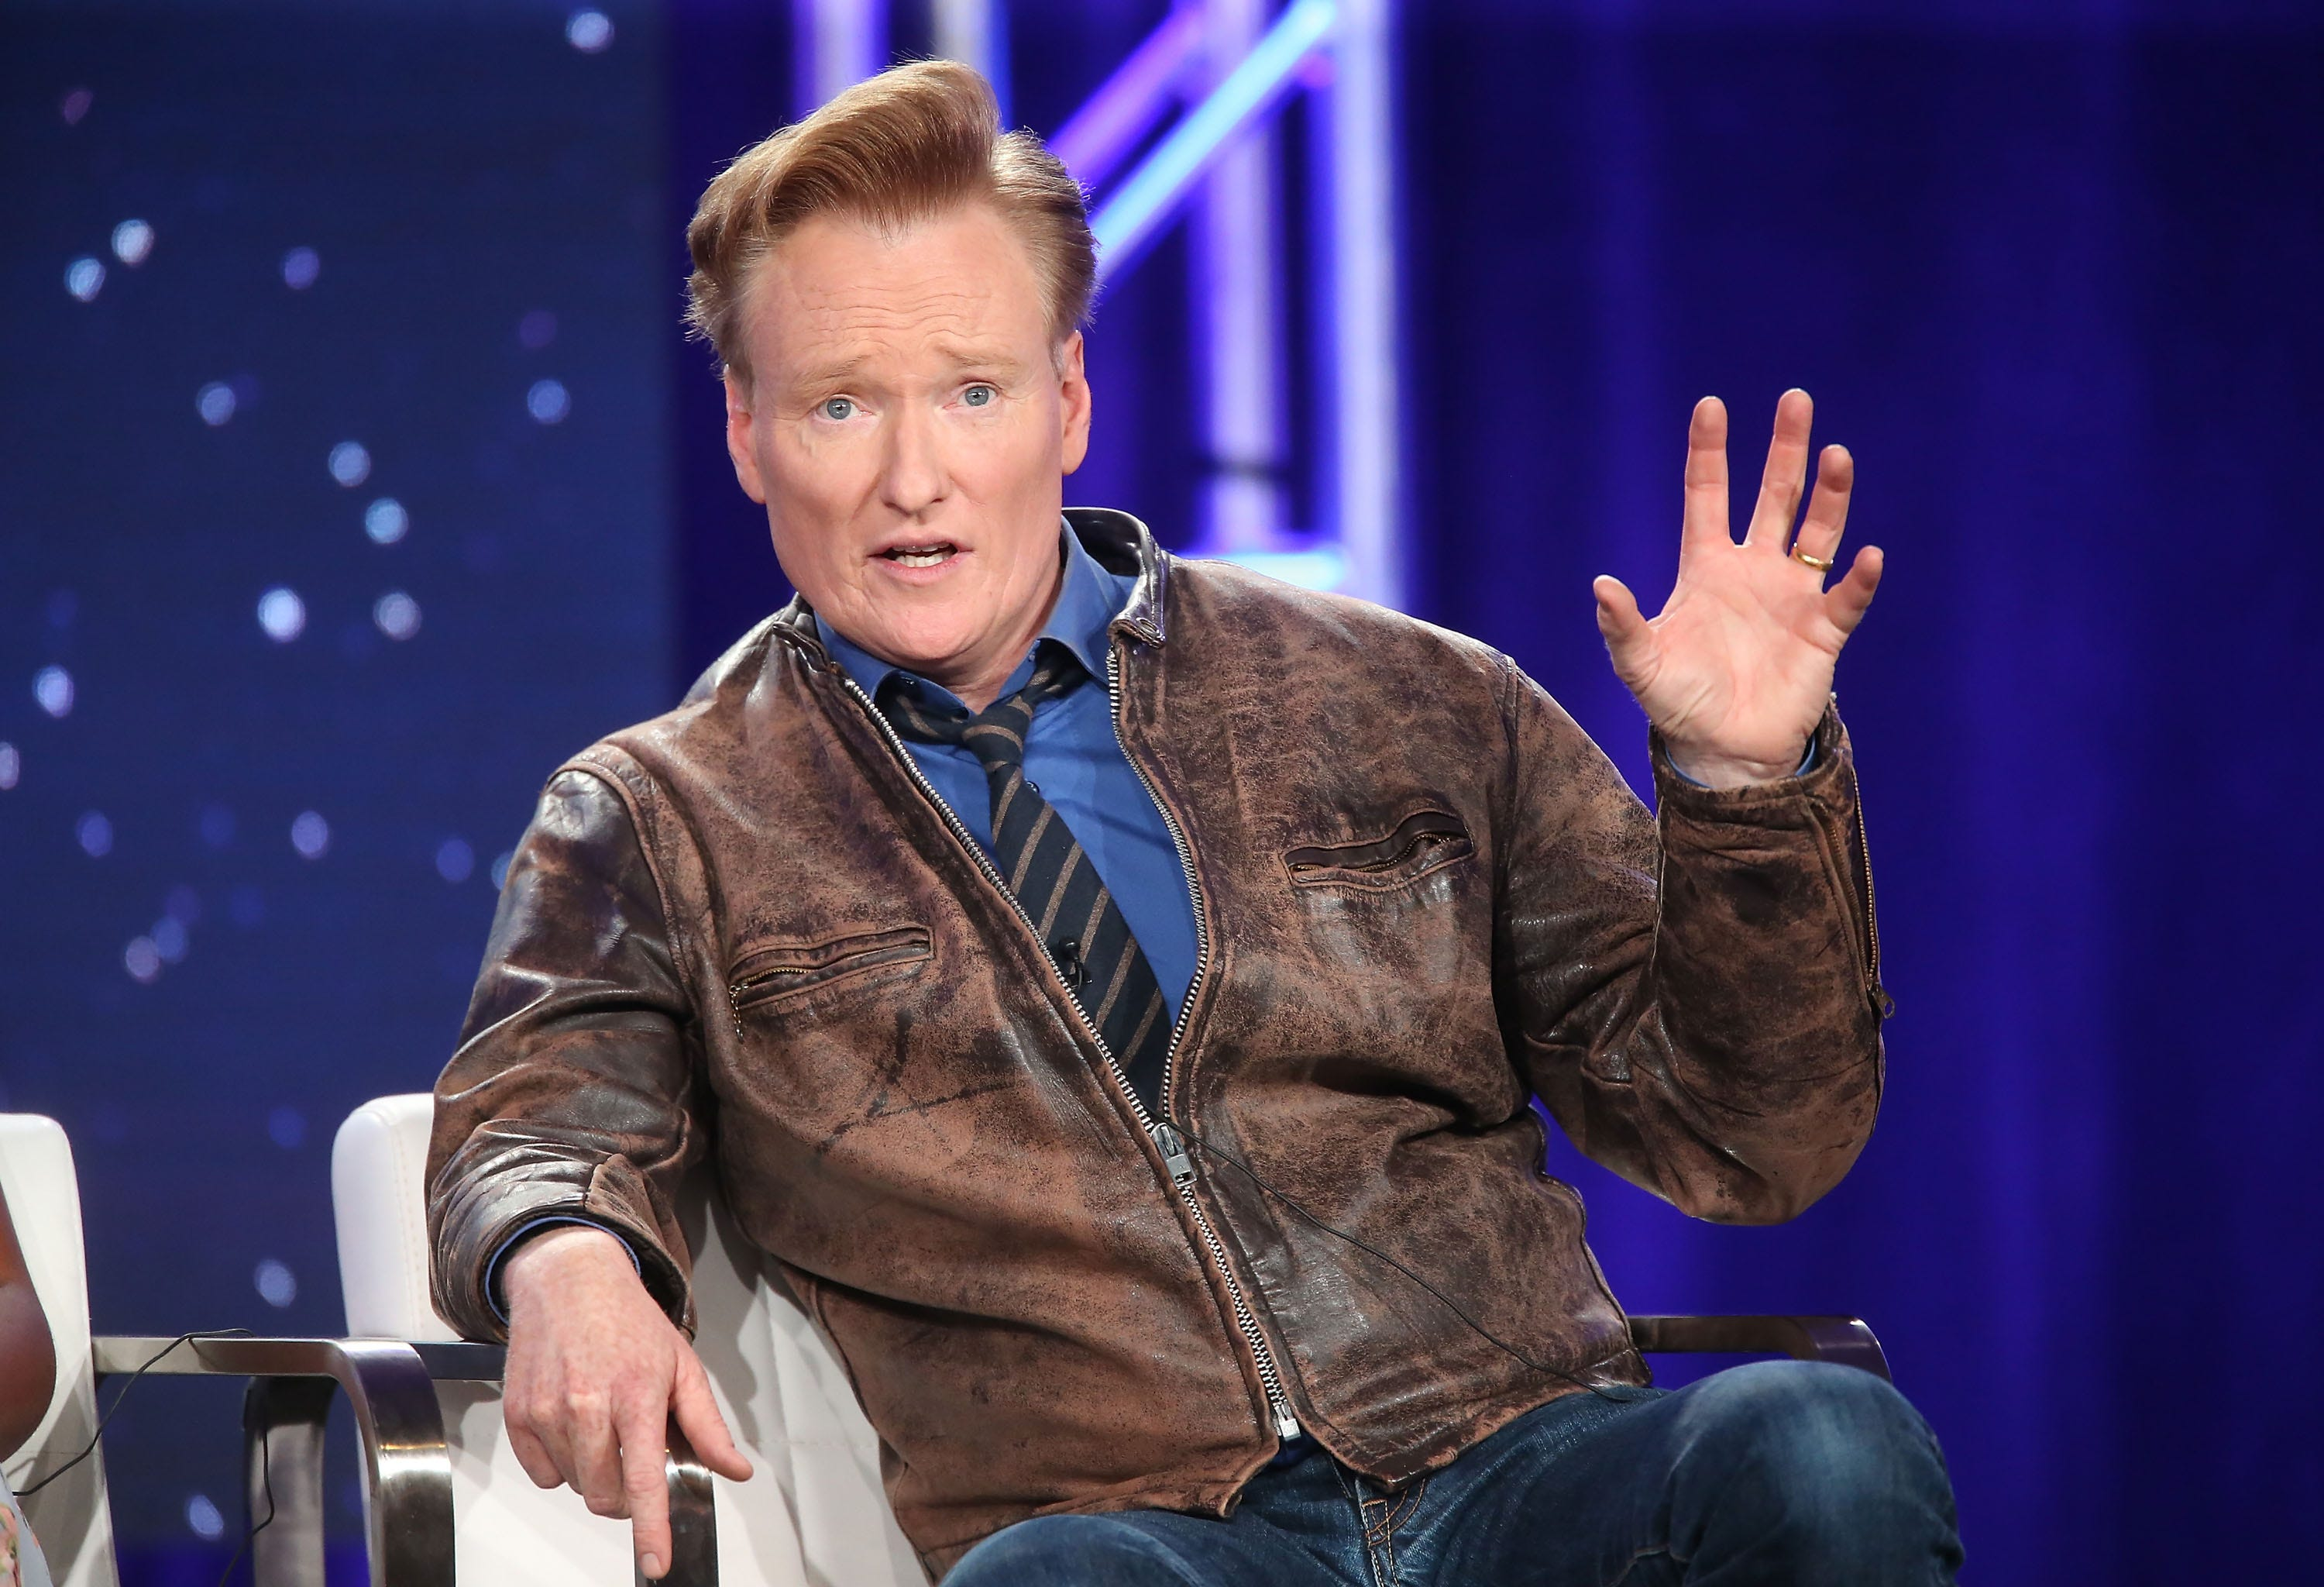 Conan O Brien s late-night talk show gets June finale date, special guests set for closing weeks